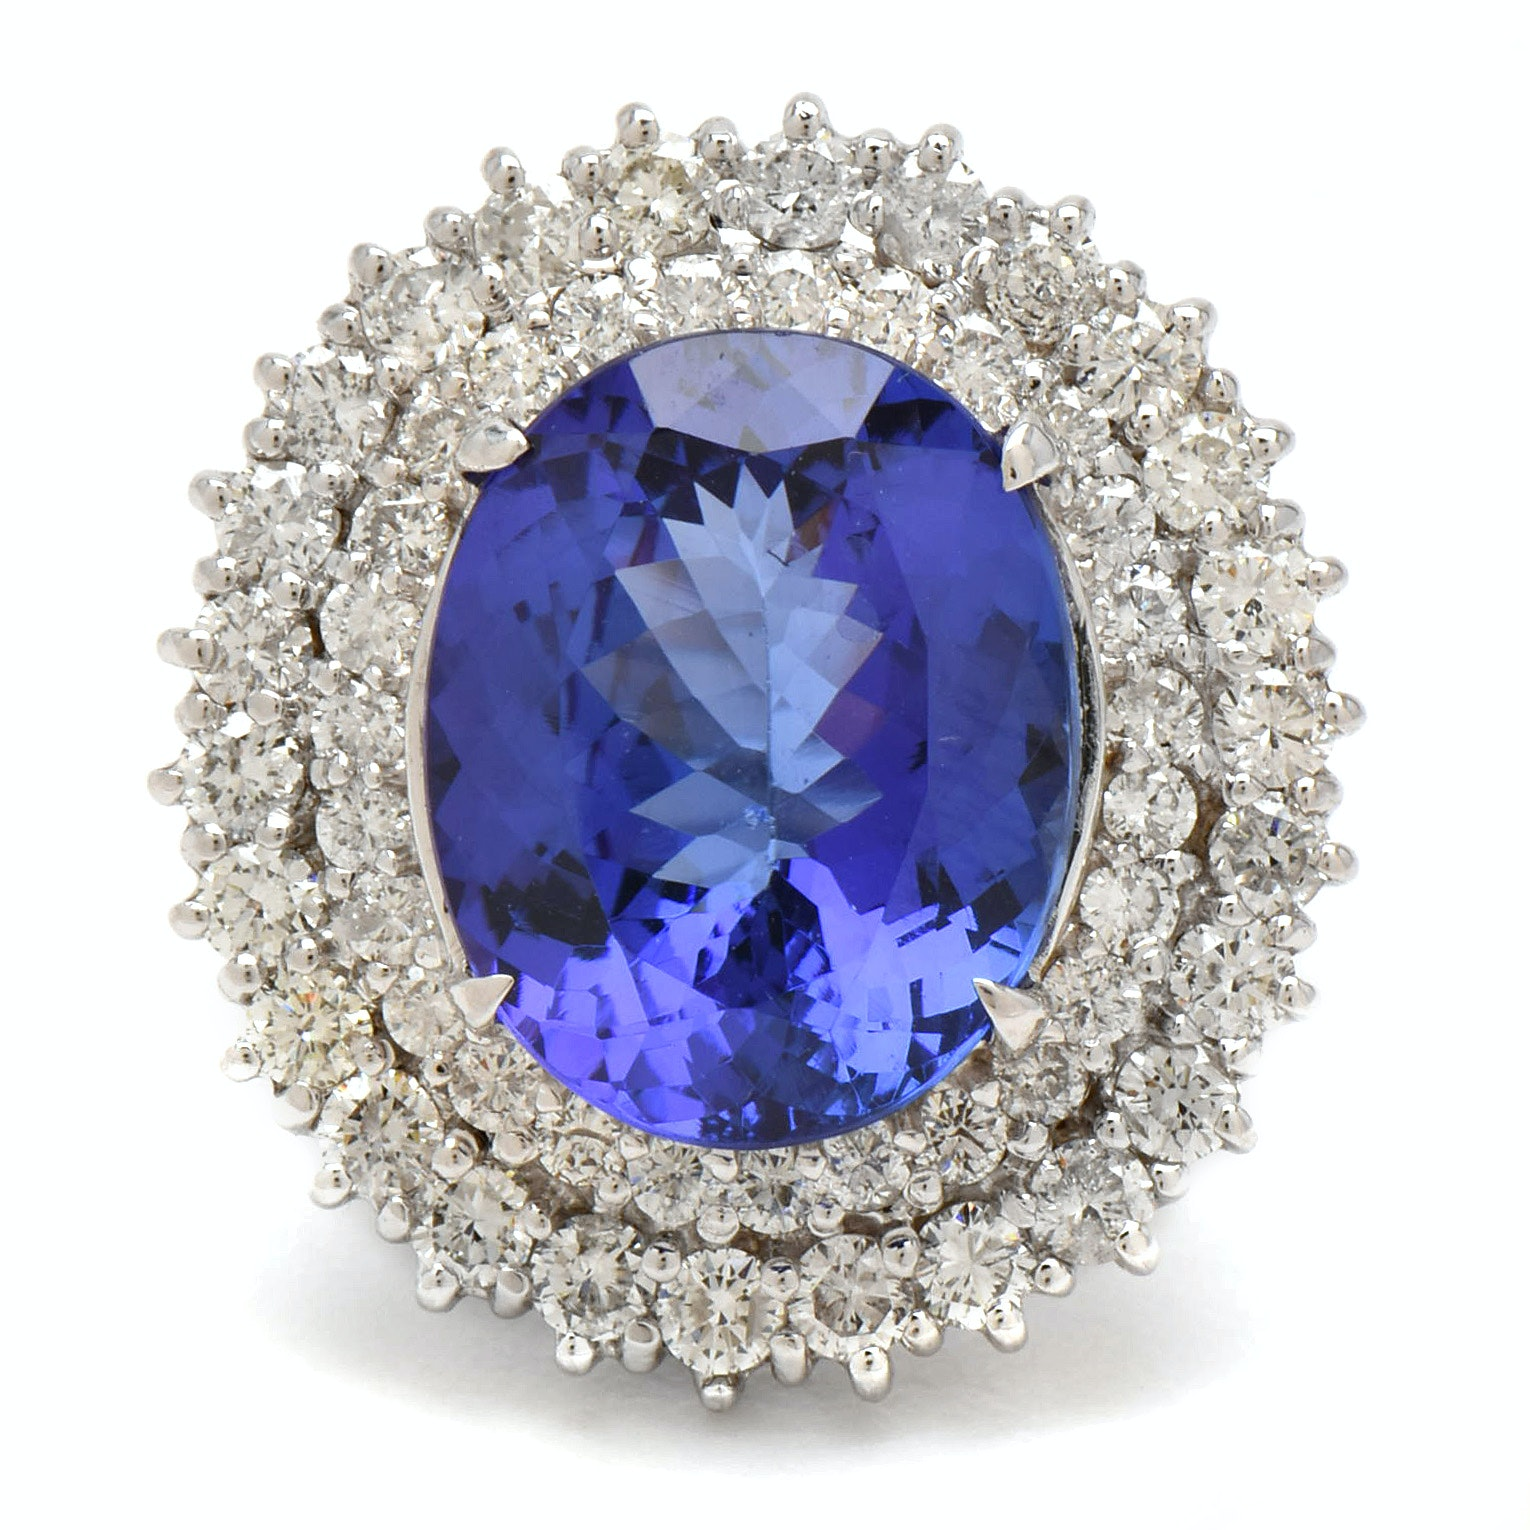 14K White Gold 11.20 CT Tanzanite and 2.37 CTW Diamond Ring